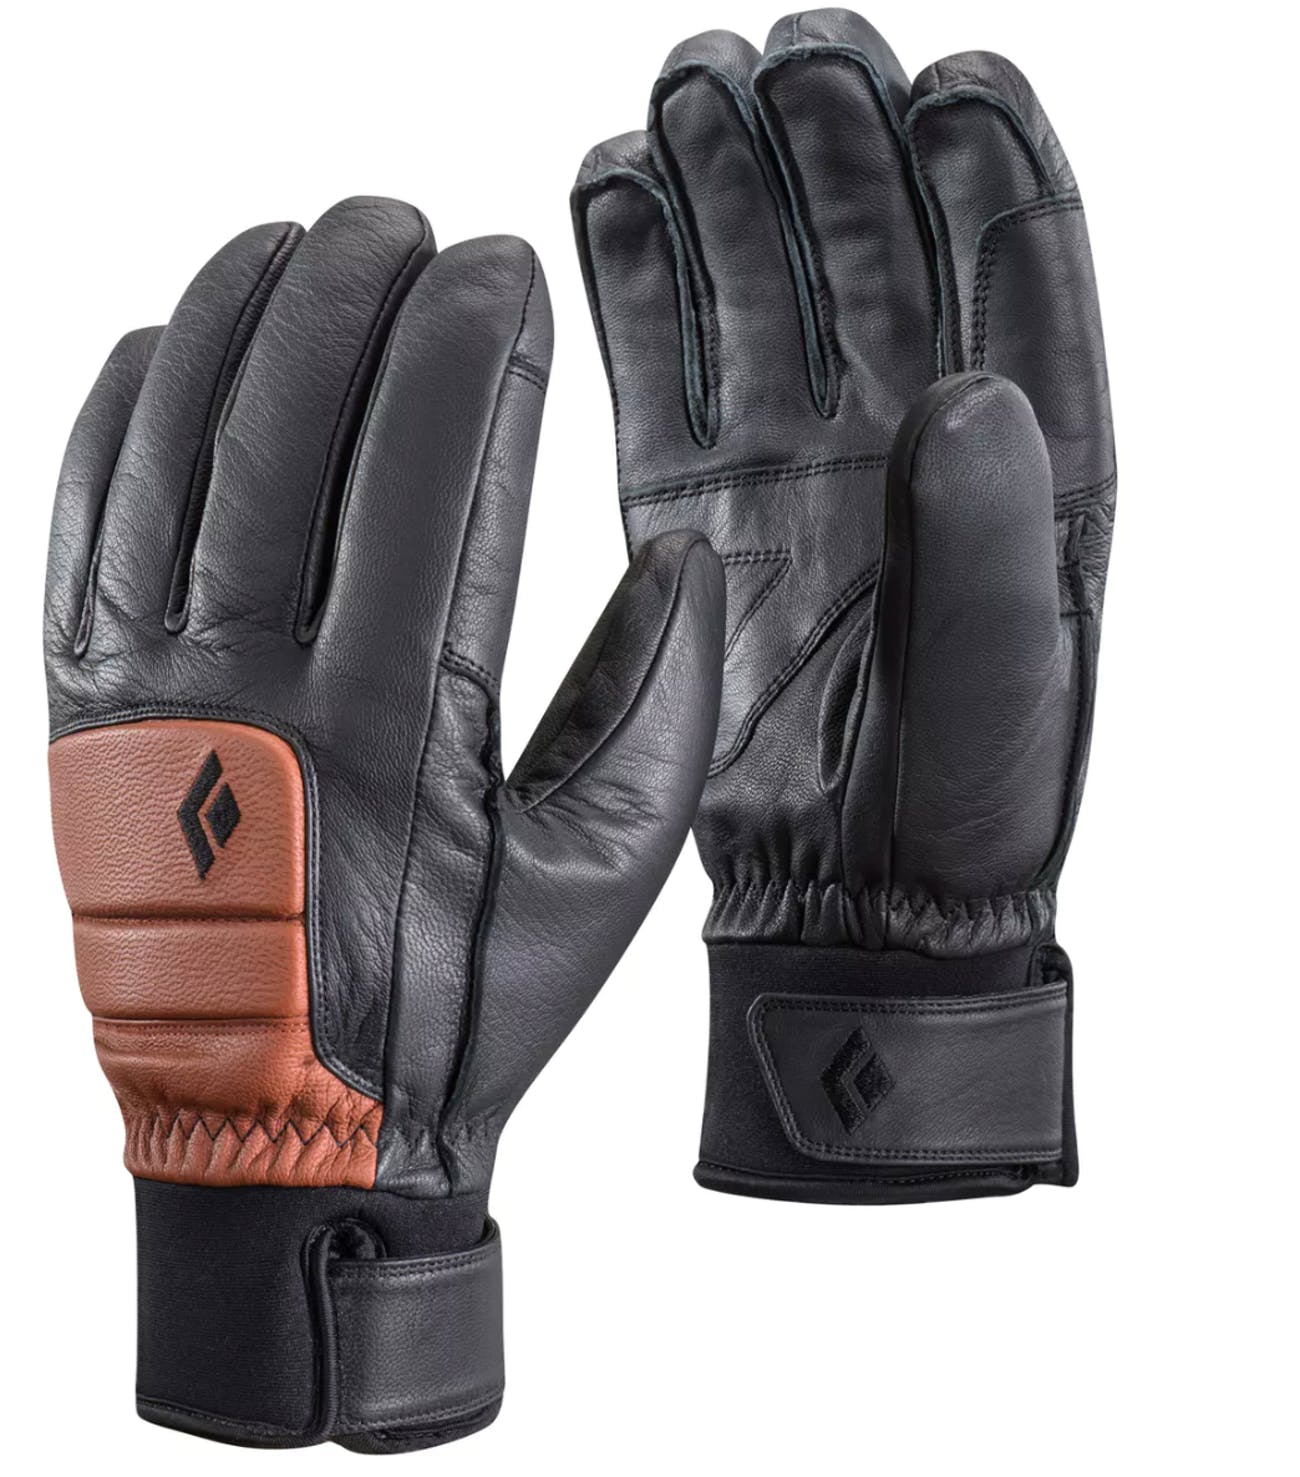 winter gloves, black winter gloves, warm winter gloves